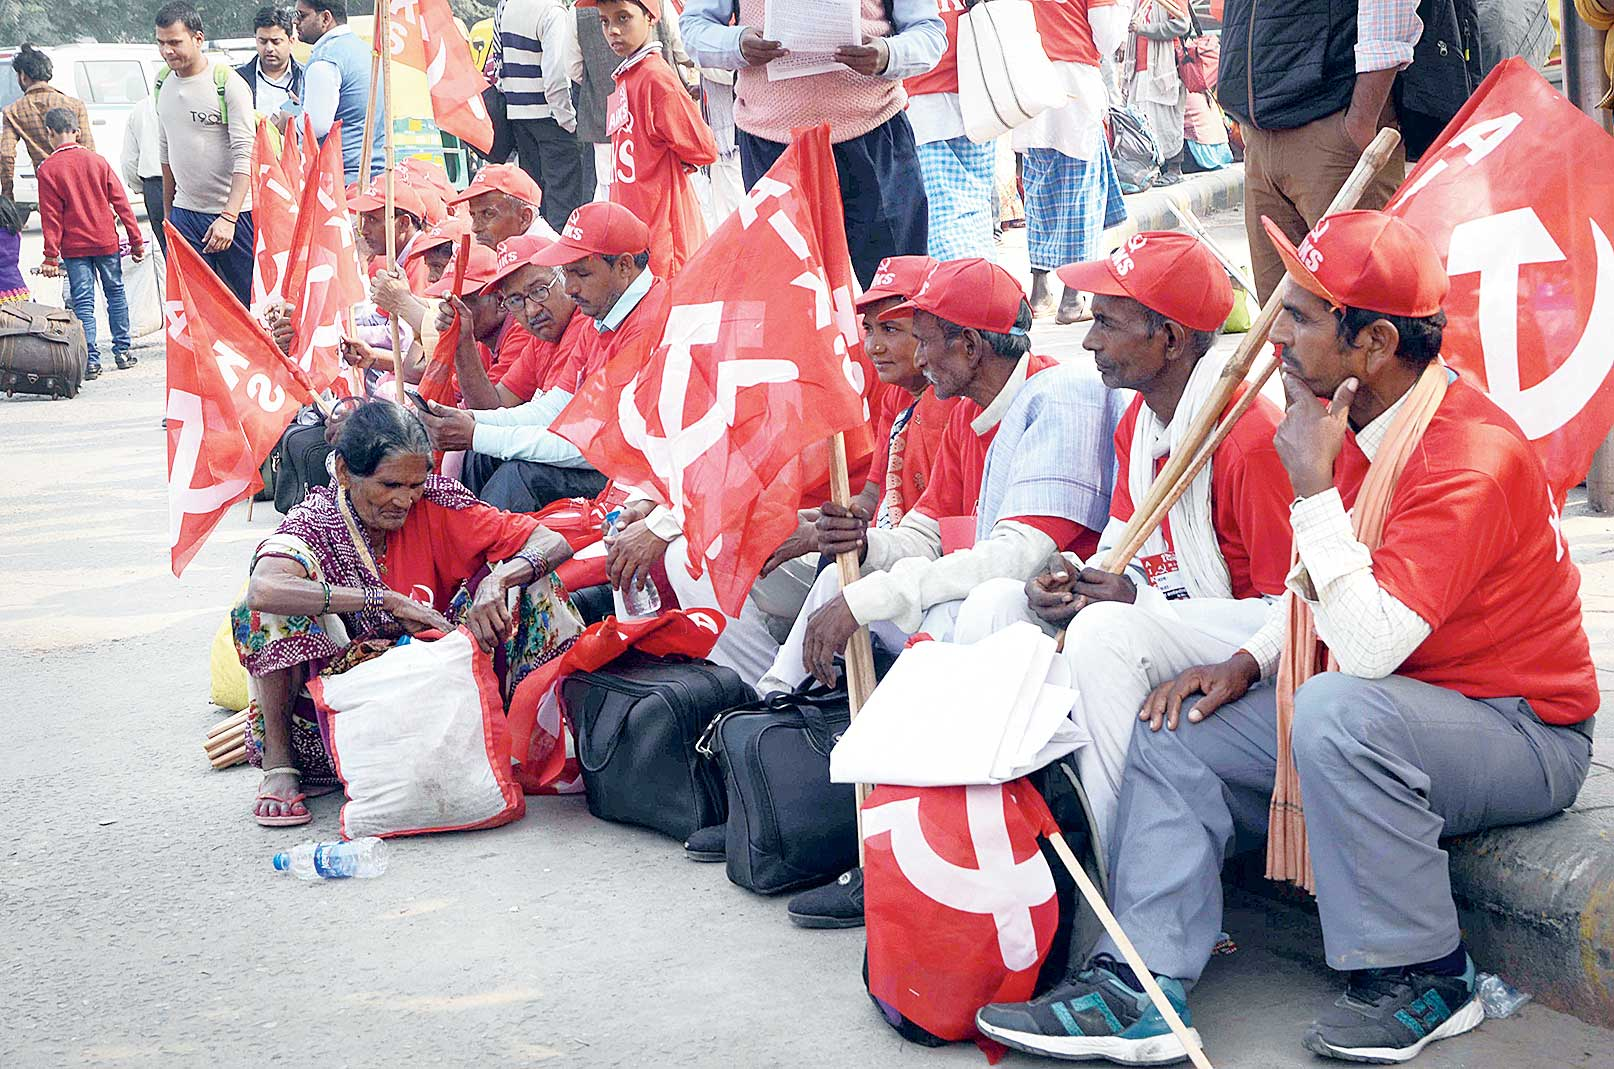 Farmers had marched through Delhi on Friday, highlighting agrarian distress and the suicides it had wrought, and demanding debt relief and good prices.